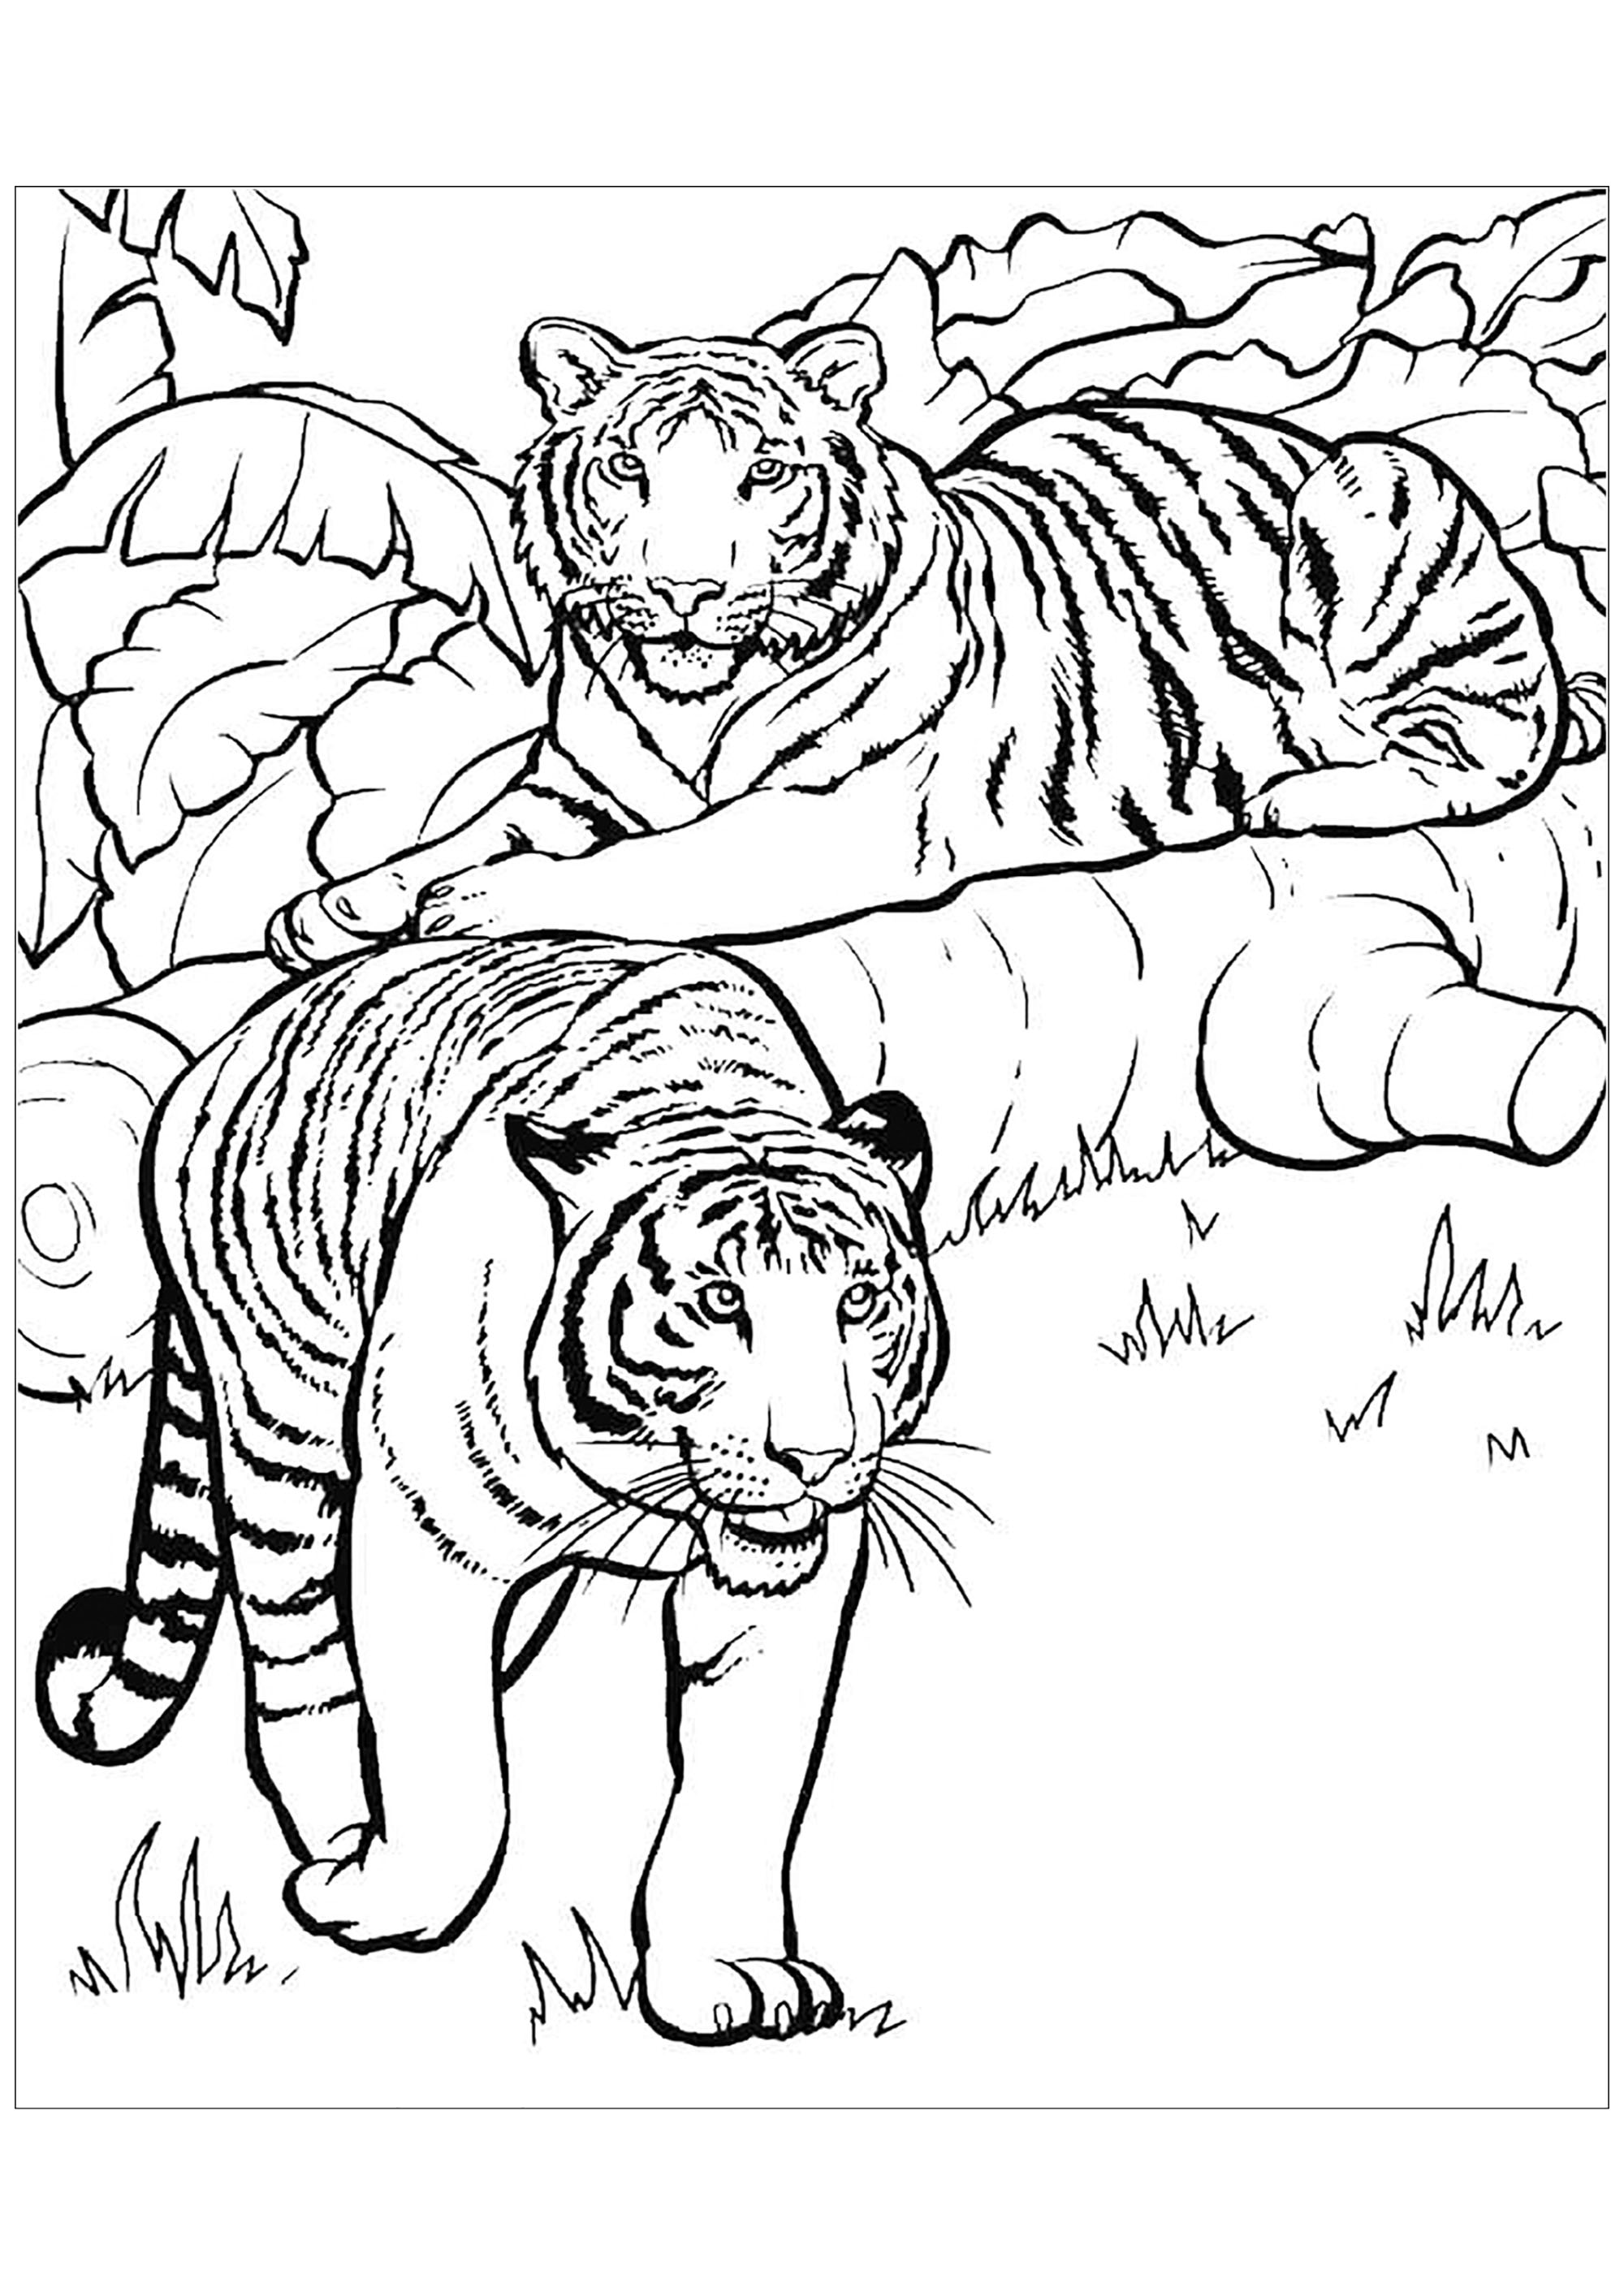 tiger images for colouring free printable tiger coloring pages for kids for colouring images tiger